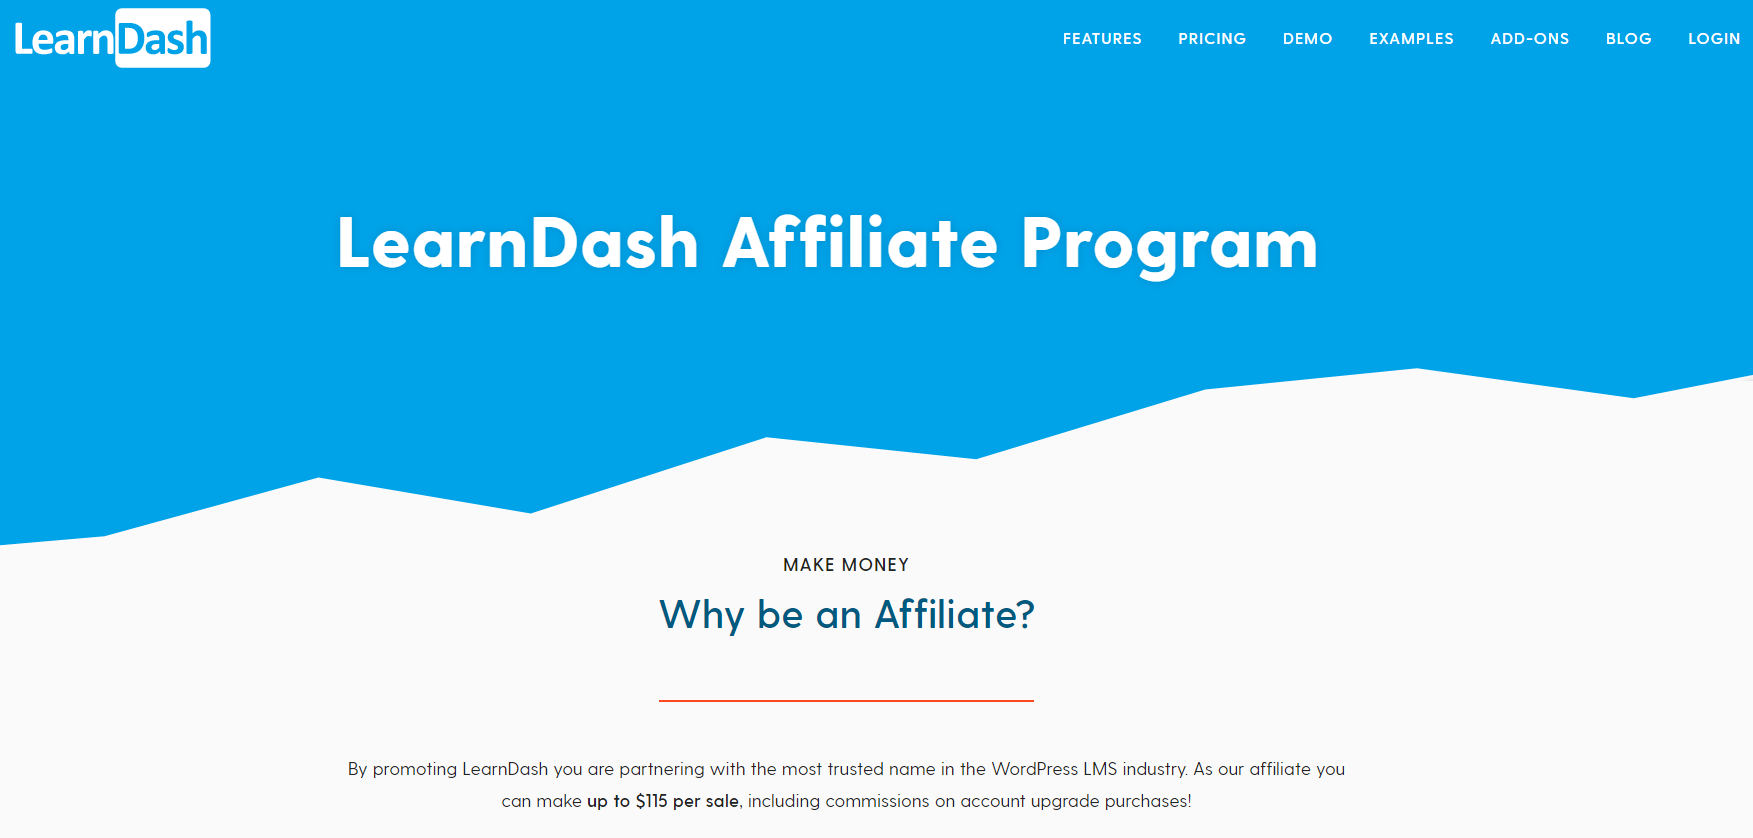 LearnDash's affiliate program asks their visitors why be an affiliate and the profit you can make simply by joining their online course affiliate program